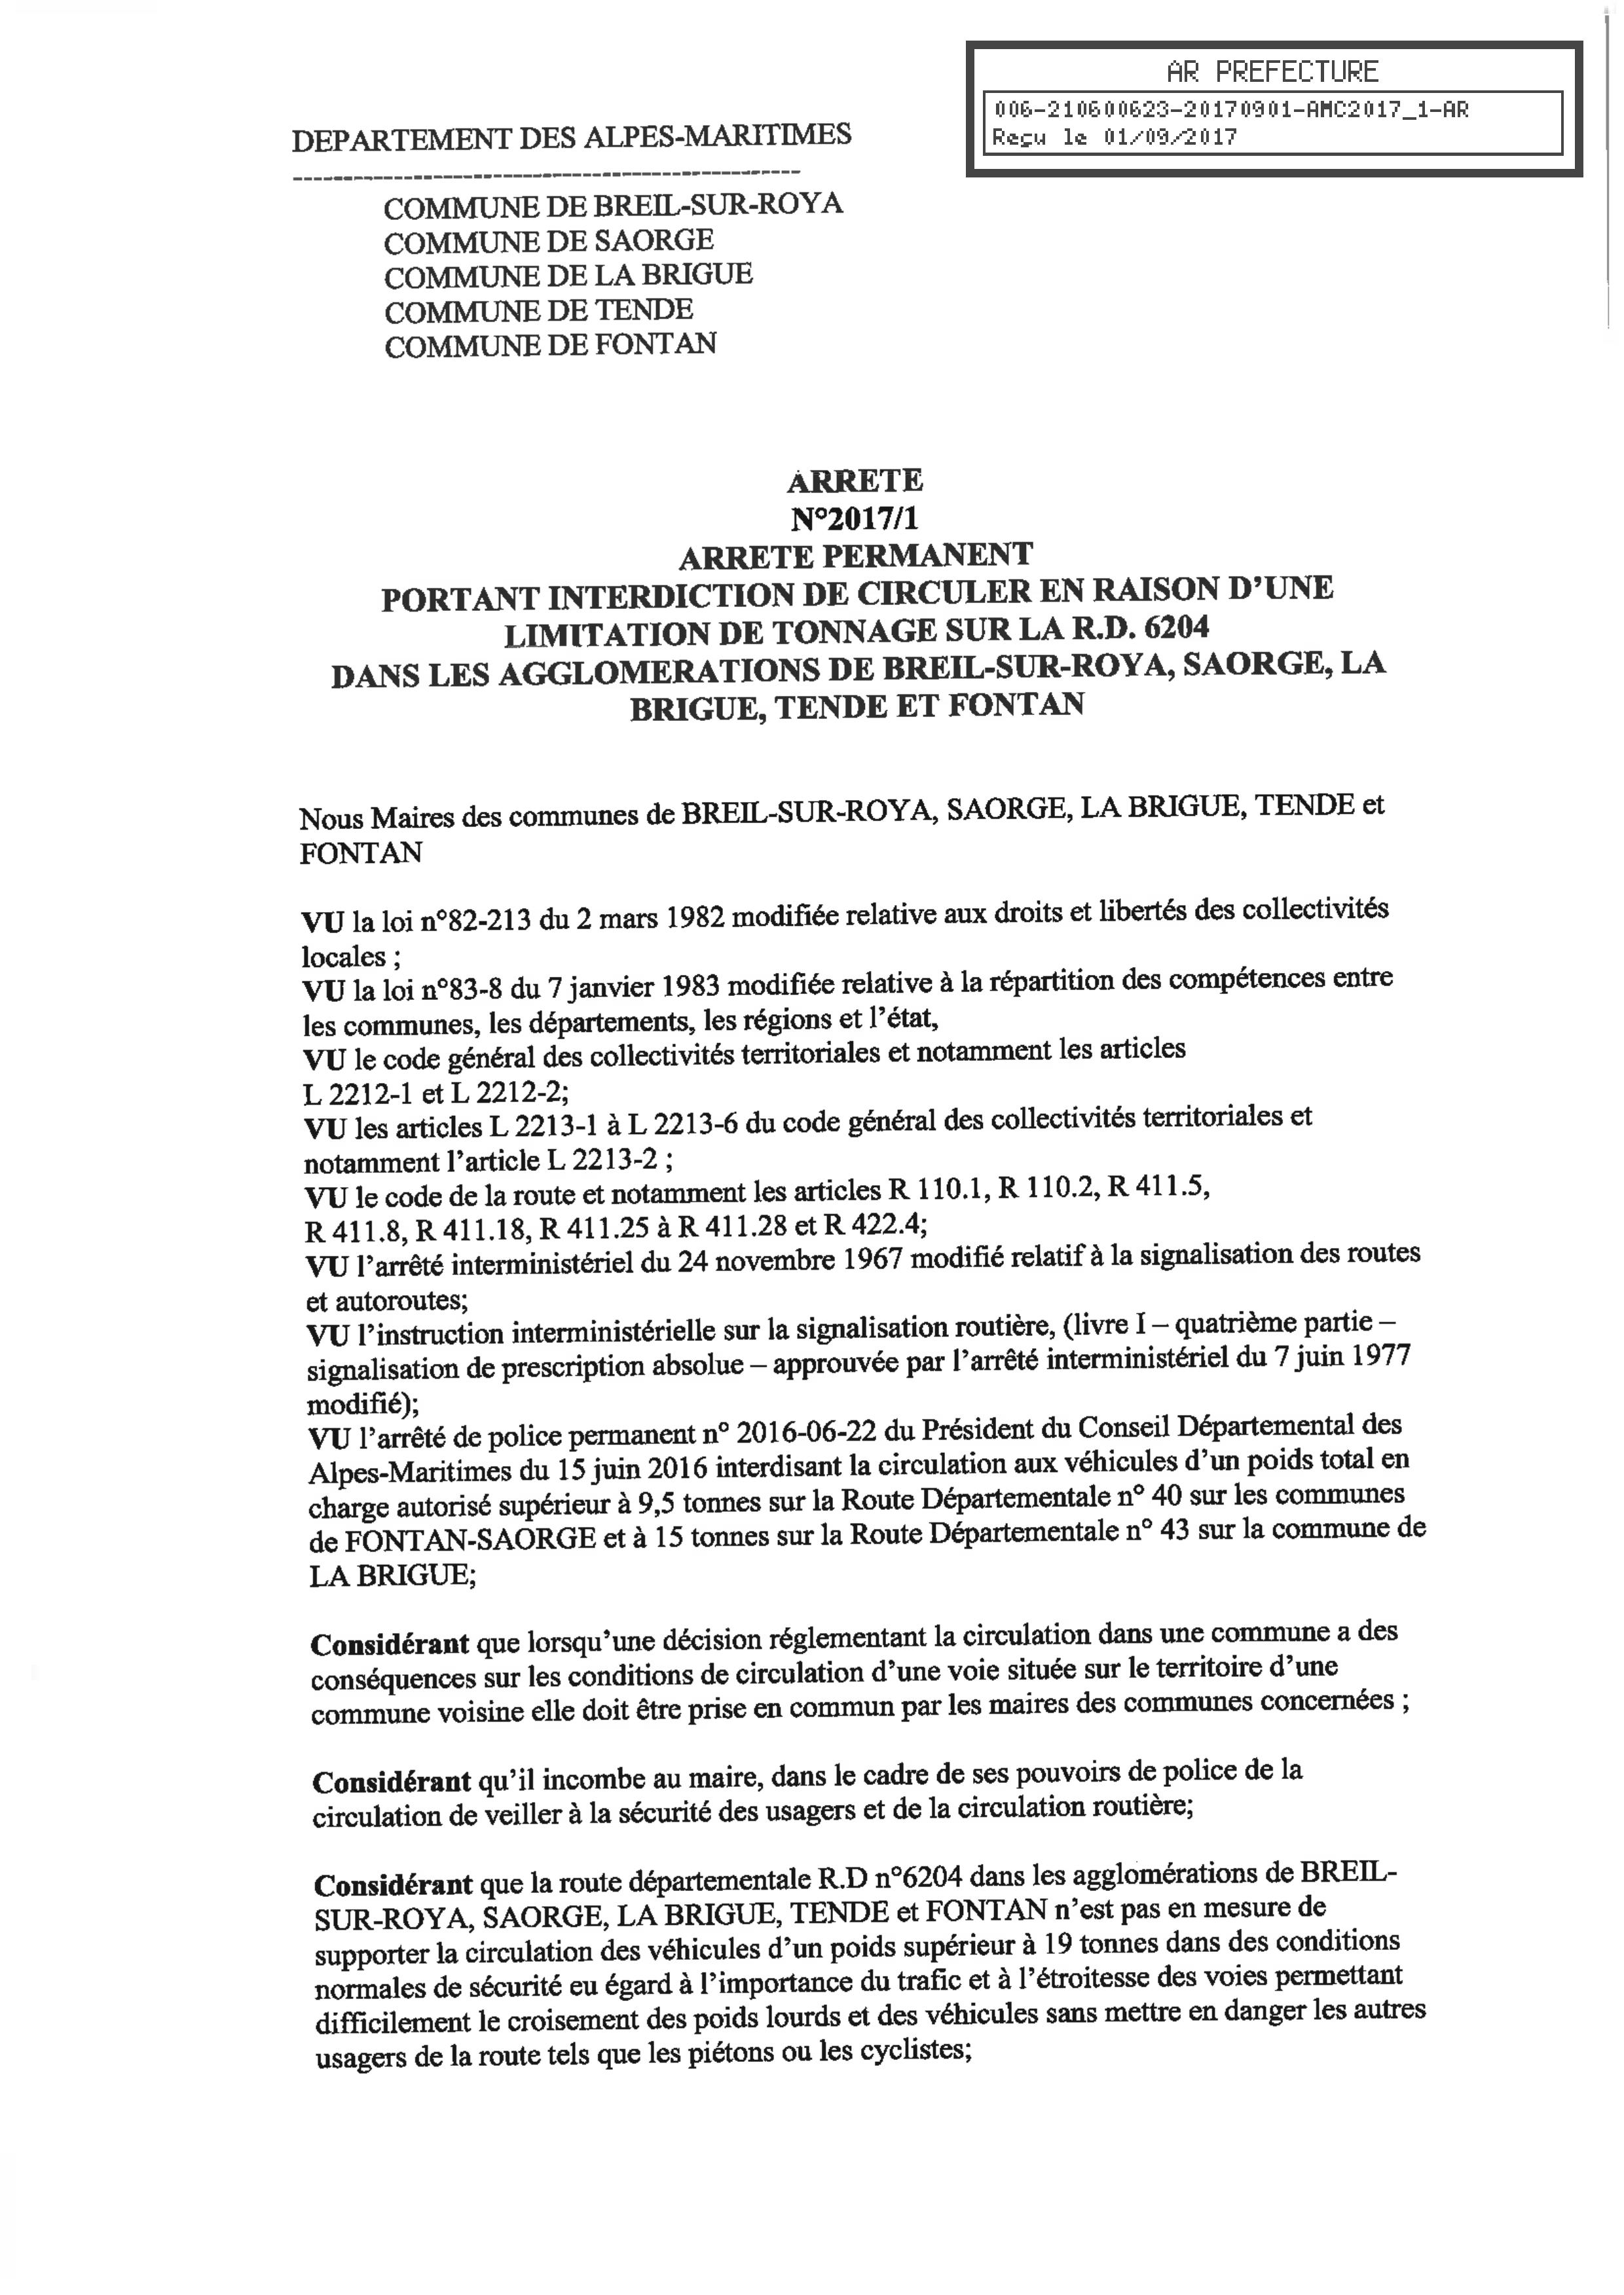 ARRETE-INTERDICTION-CIRCULATION-LIMITATION-TONNAGE-RD6204-AGGLO-BREIL-SAORGE-LA-BRIGUE-TENDE-FONTAN-page1